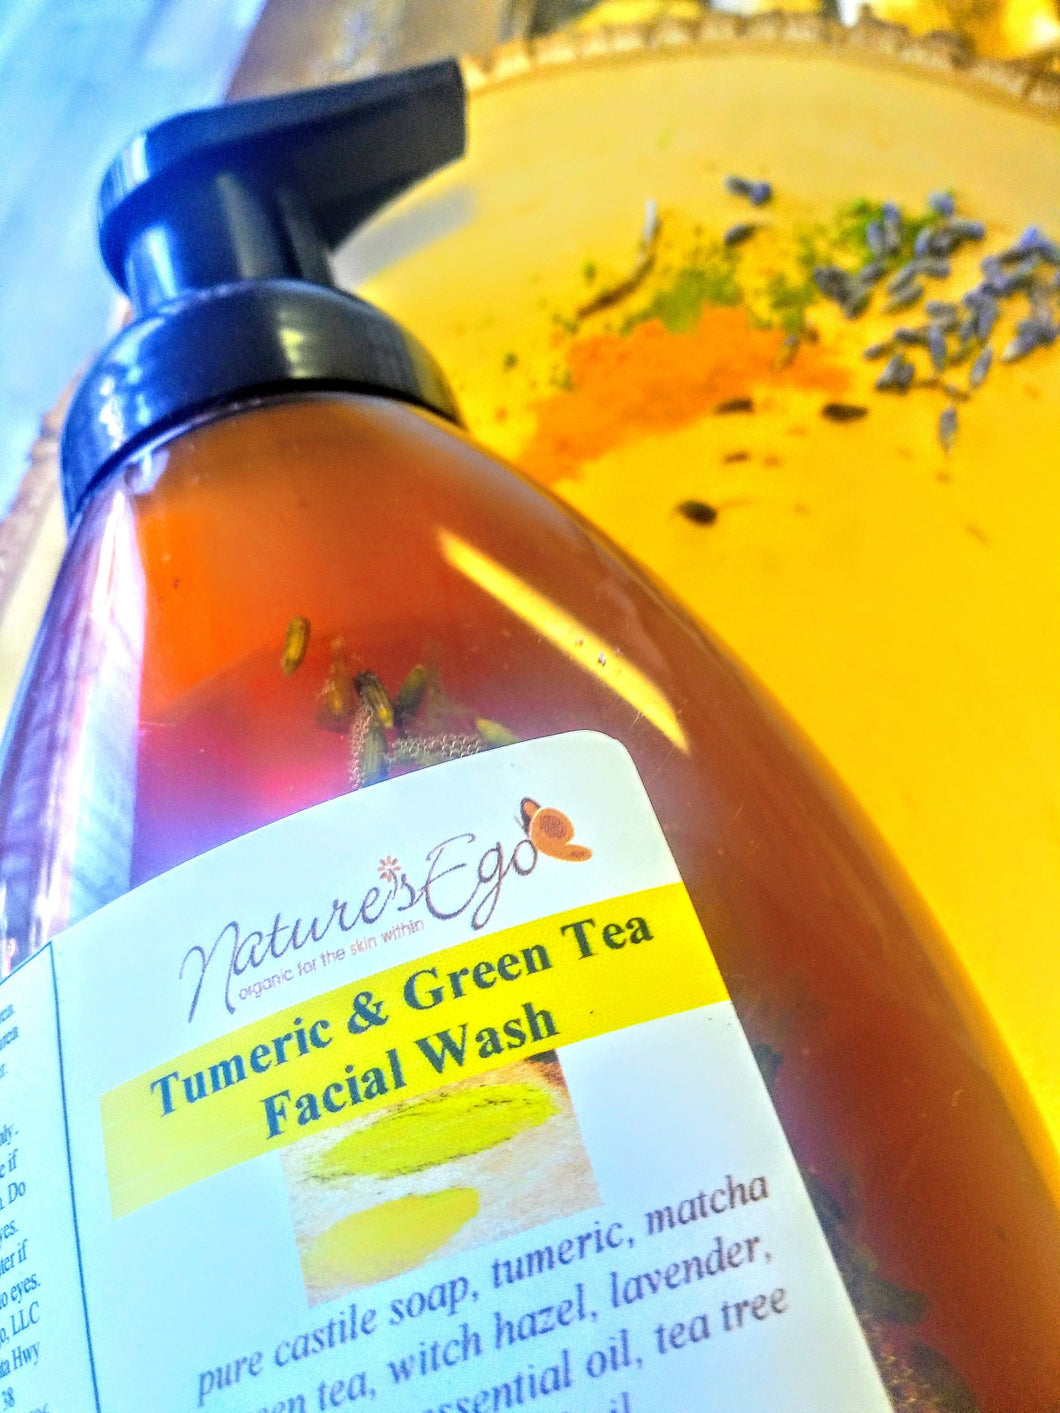 Tumeric & Green Tea Facial Wash